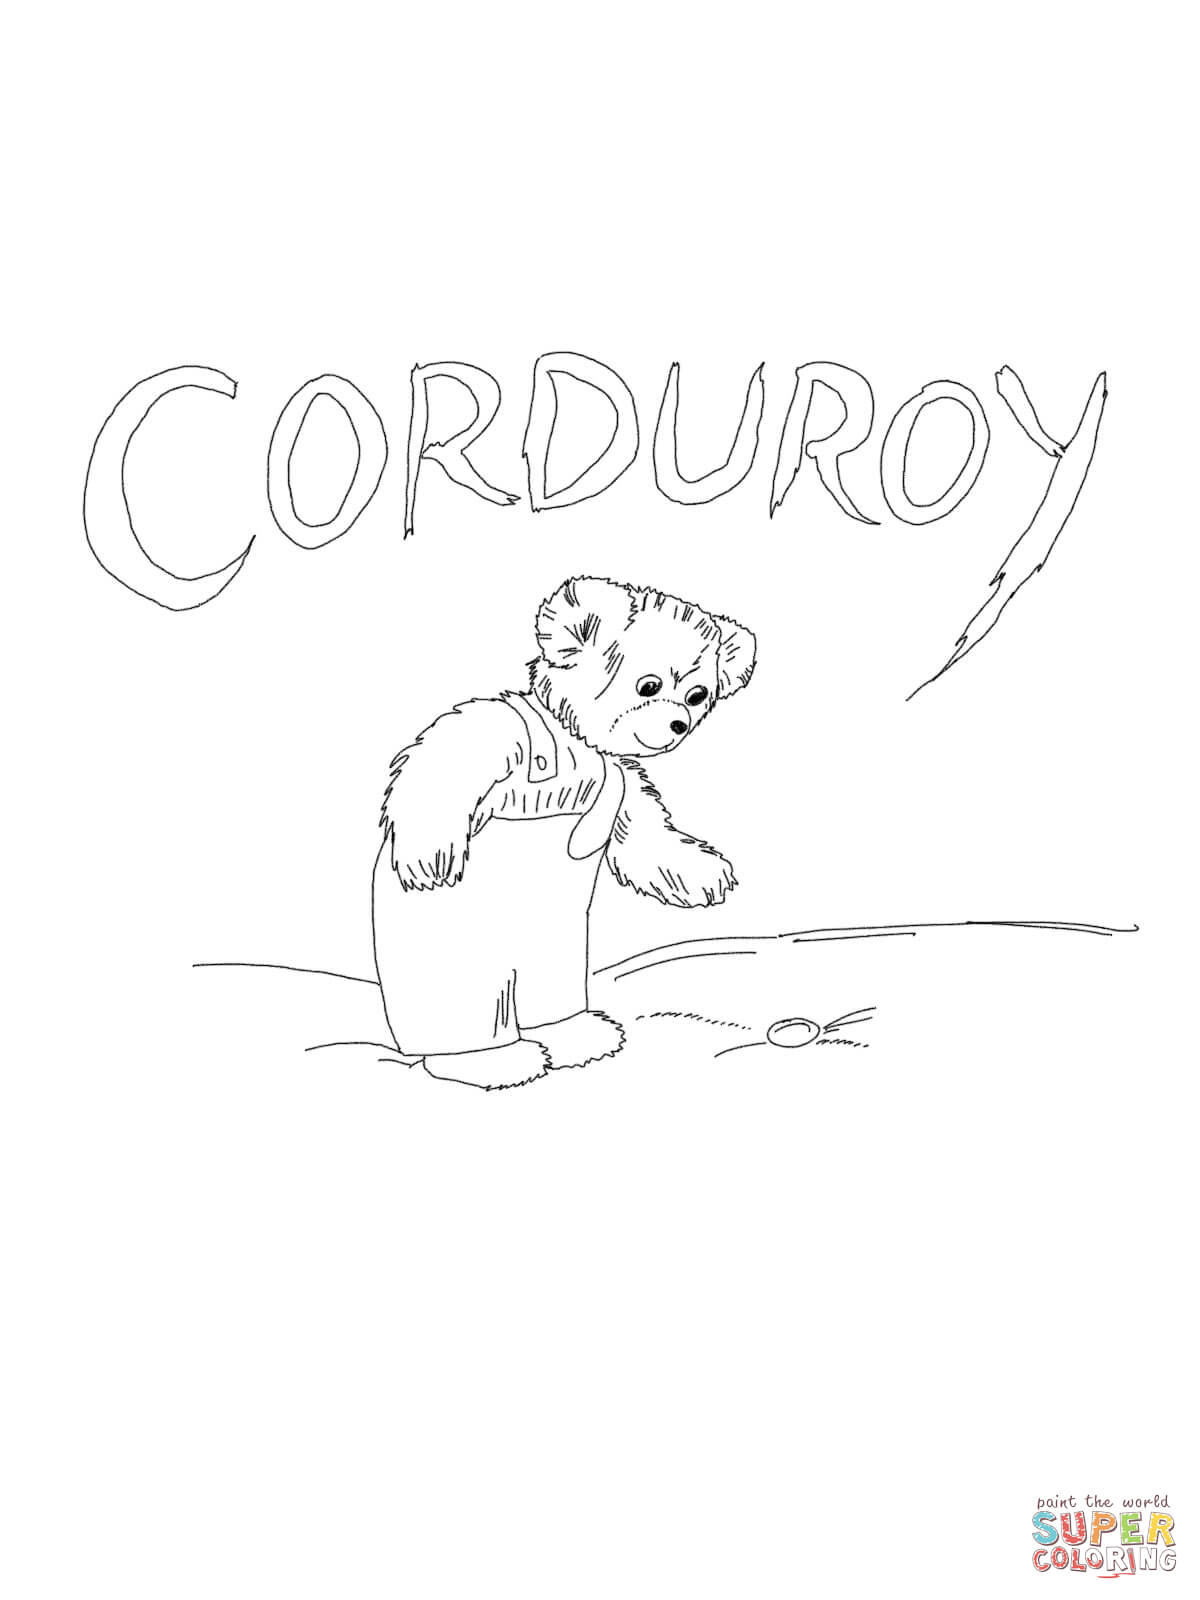 corduroy coloring pages-#4